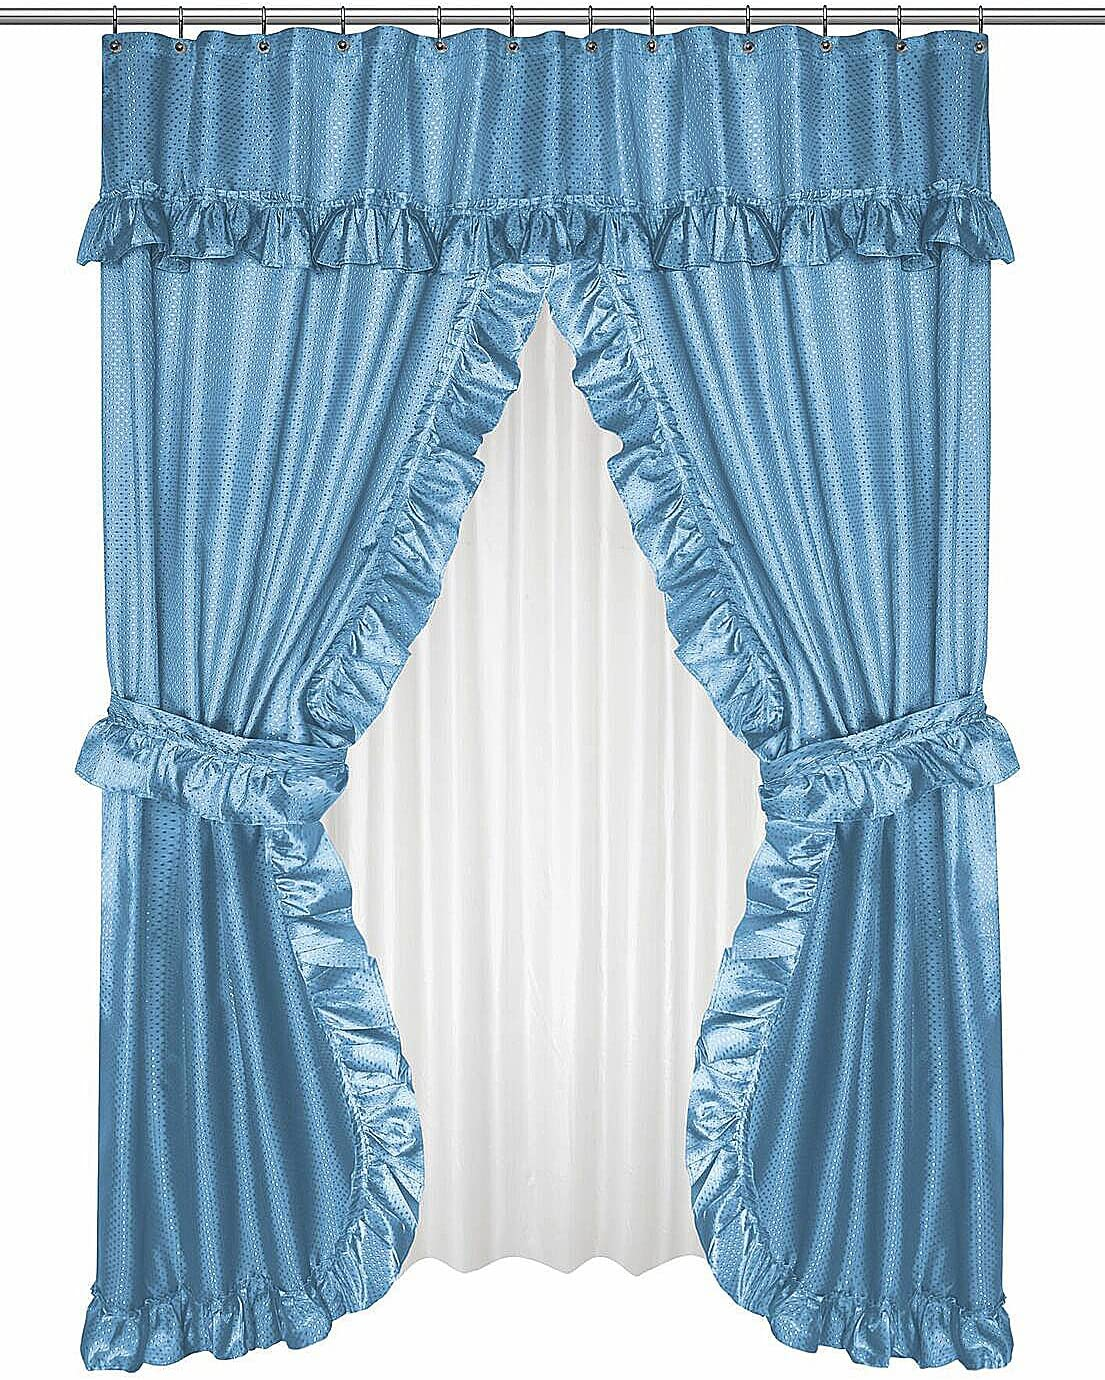 White Diamond Dot Ruffled Fabric Bathroom Window Curtain With Attached Valance and Tiebacks